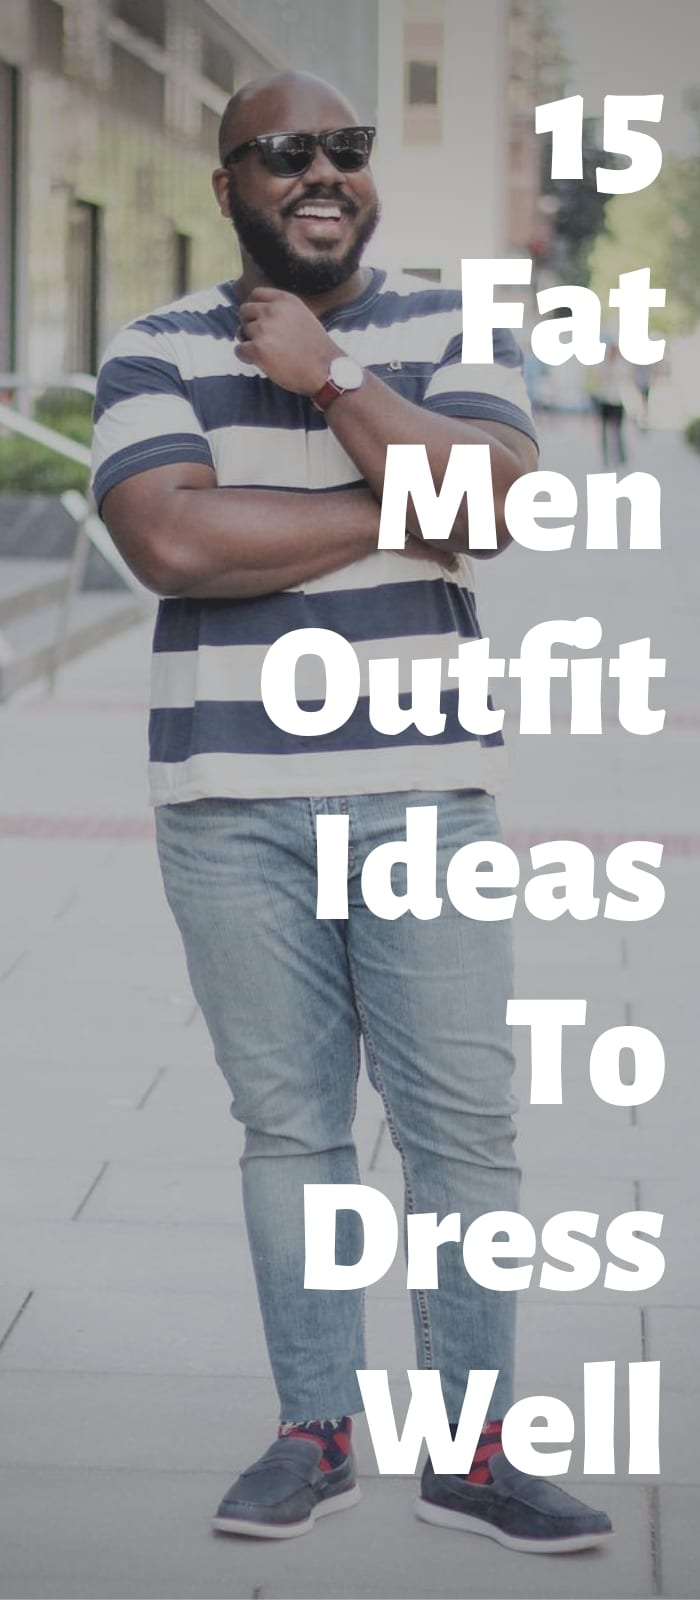 15 Fat Men Outfit Ideas To Dress Well!